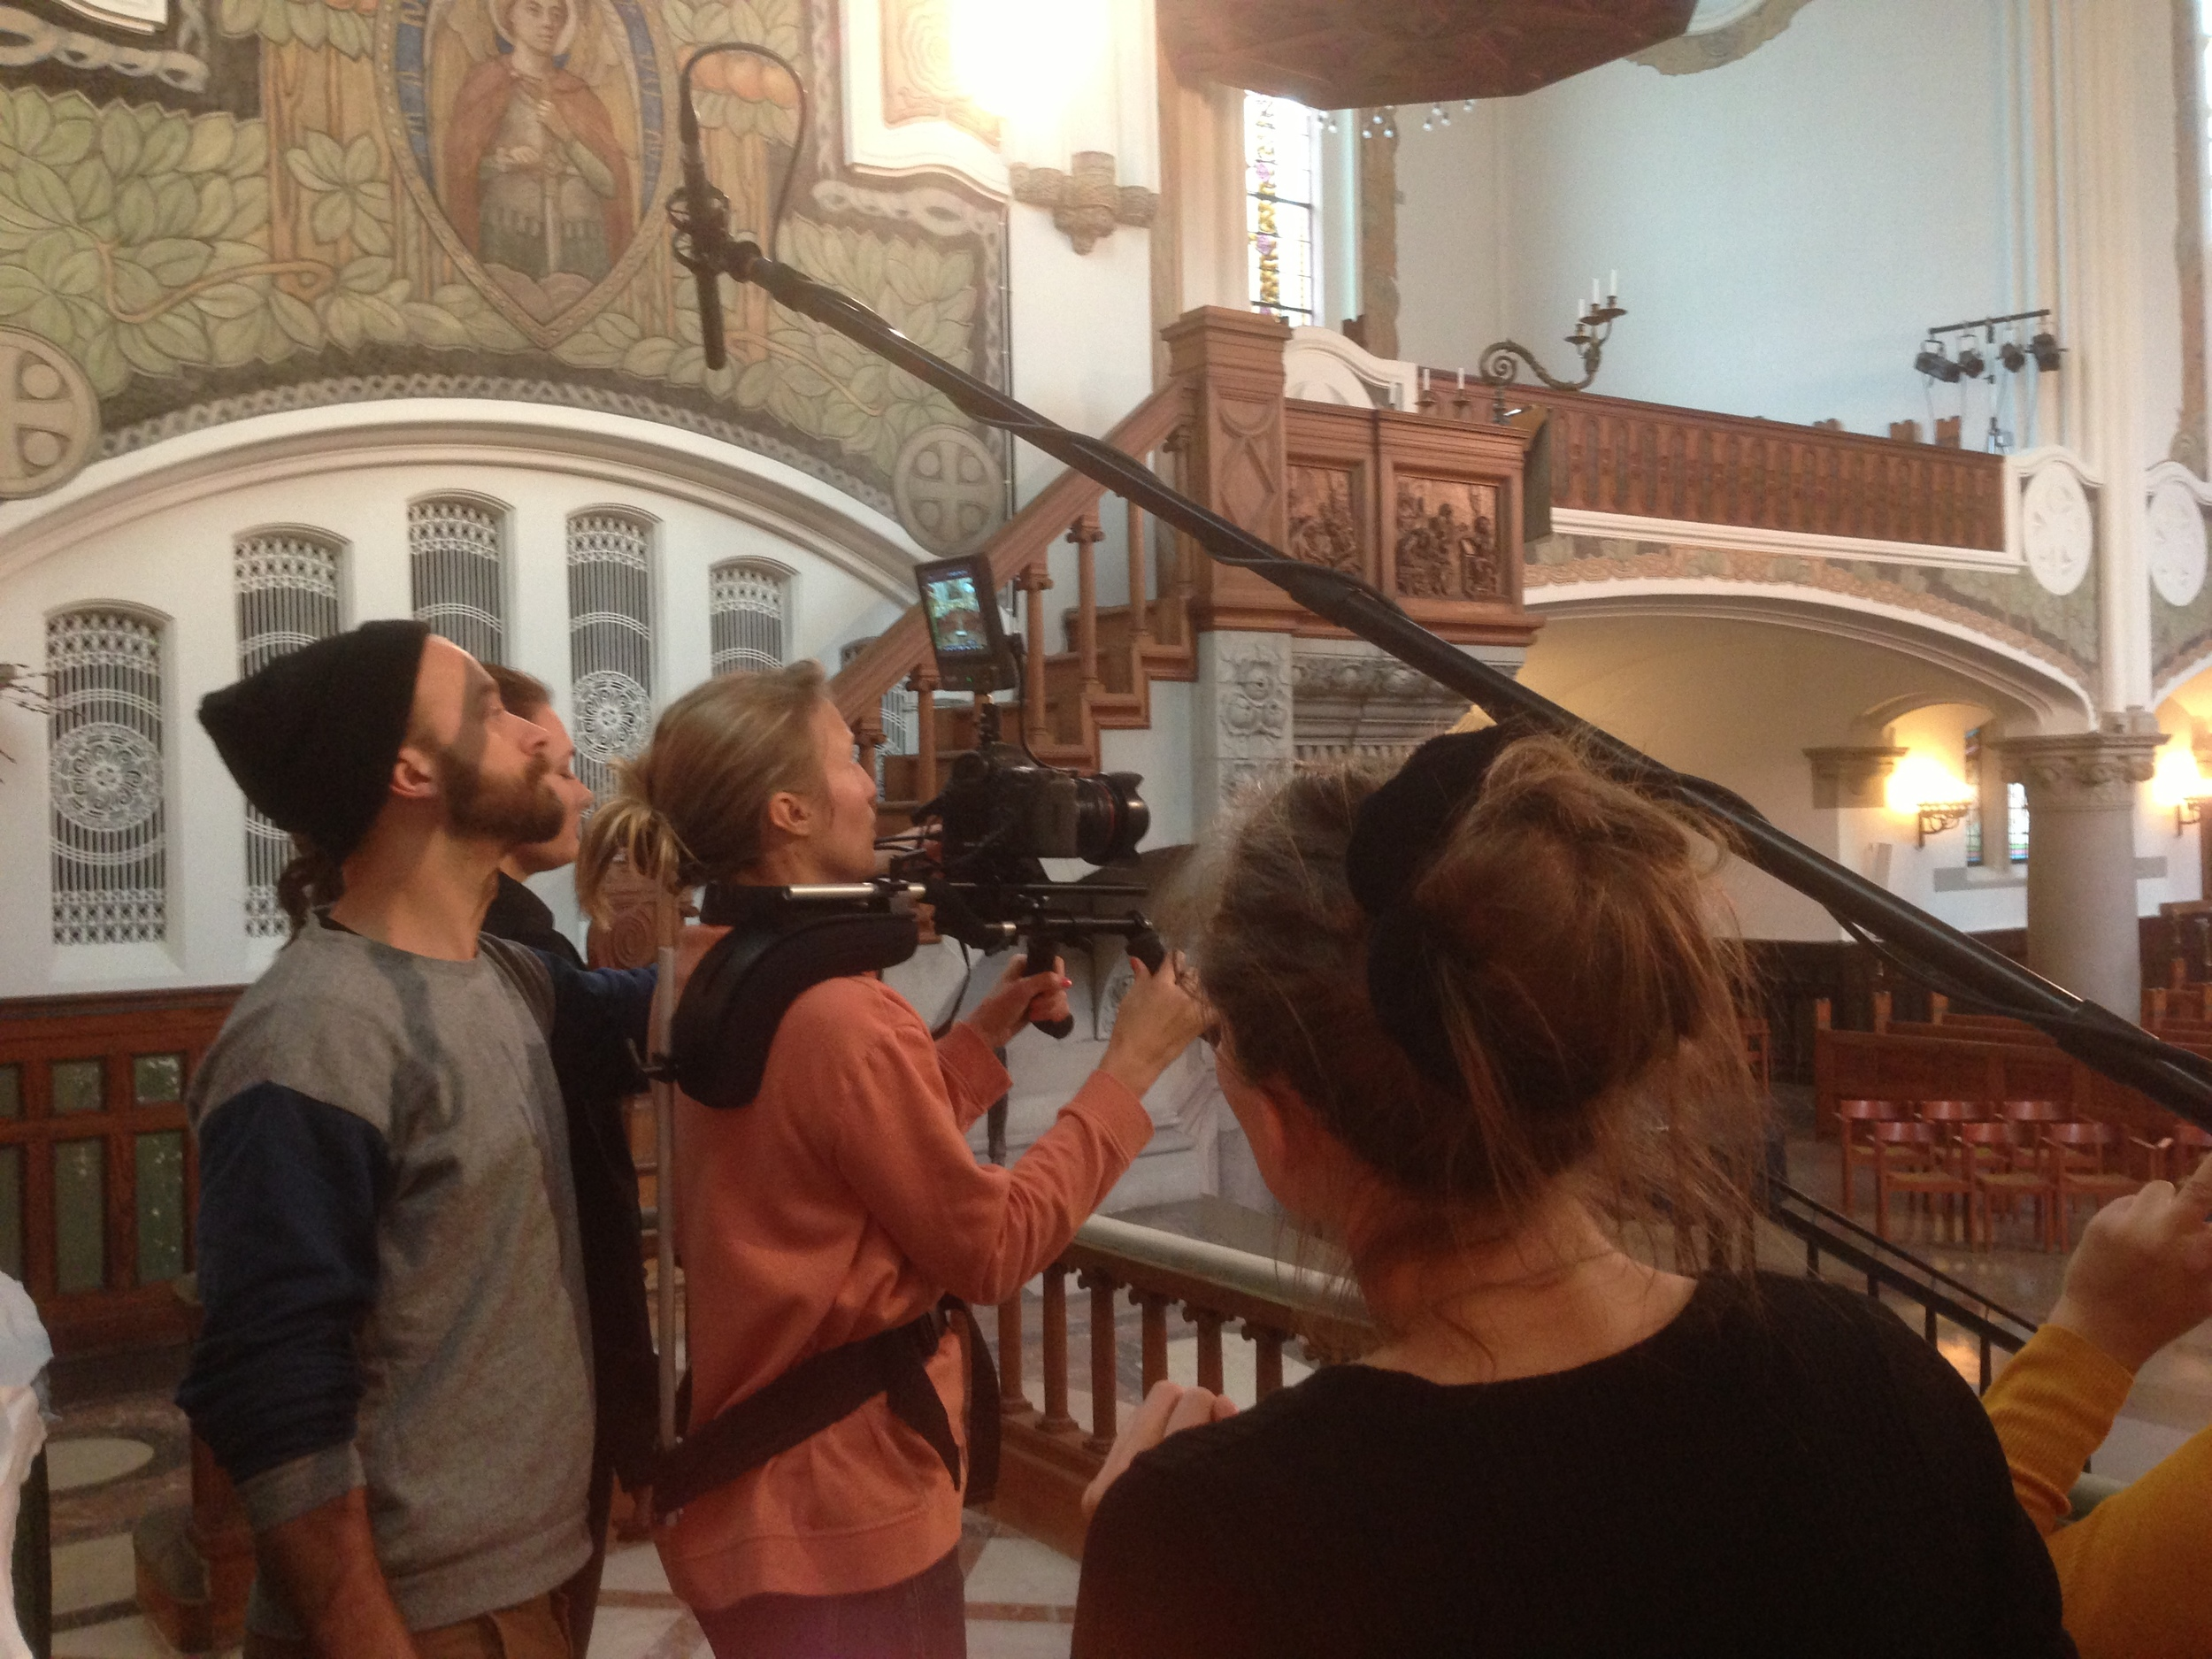 being a photographer in a beautiful church